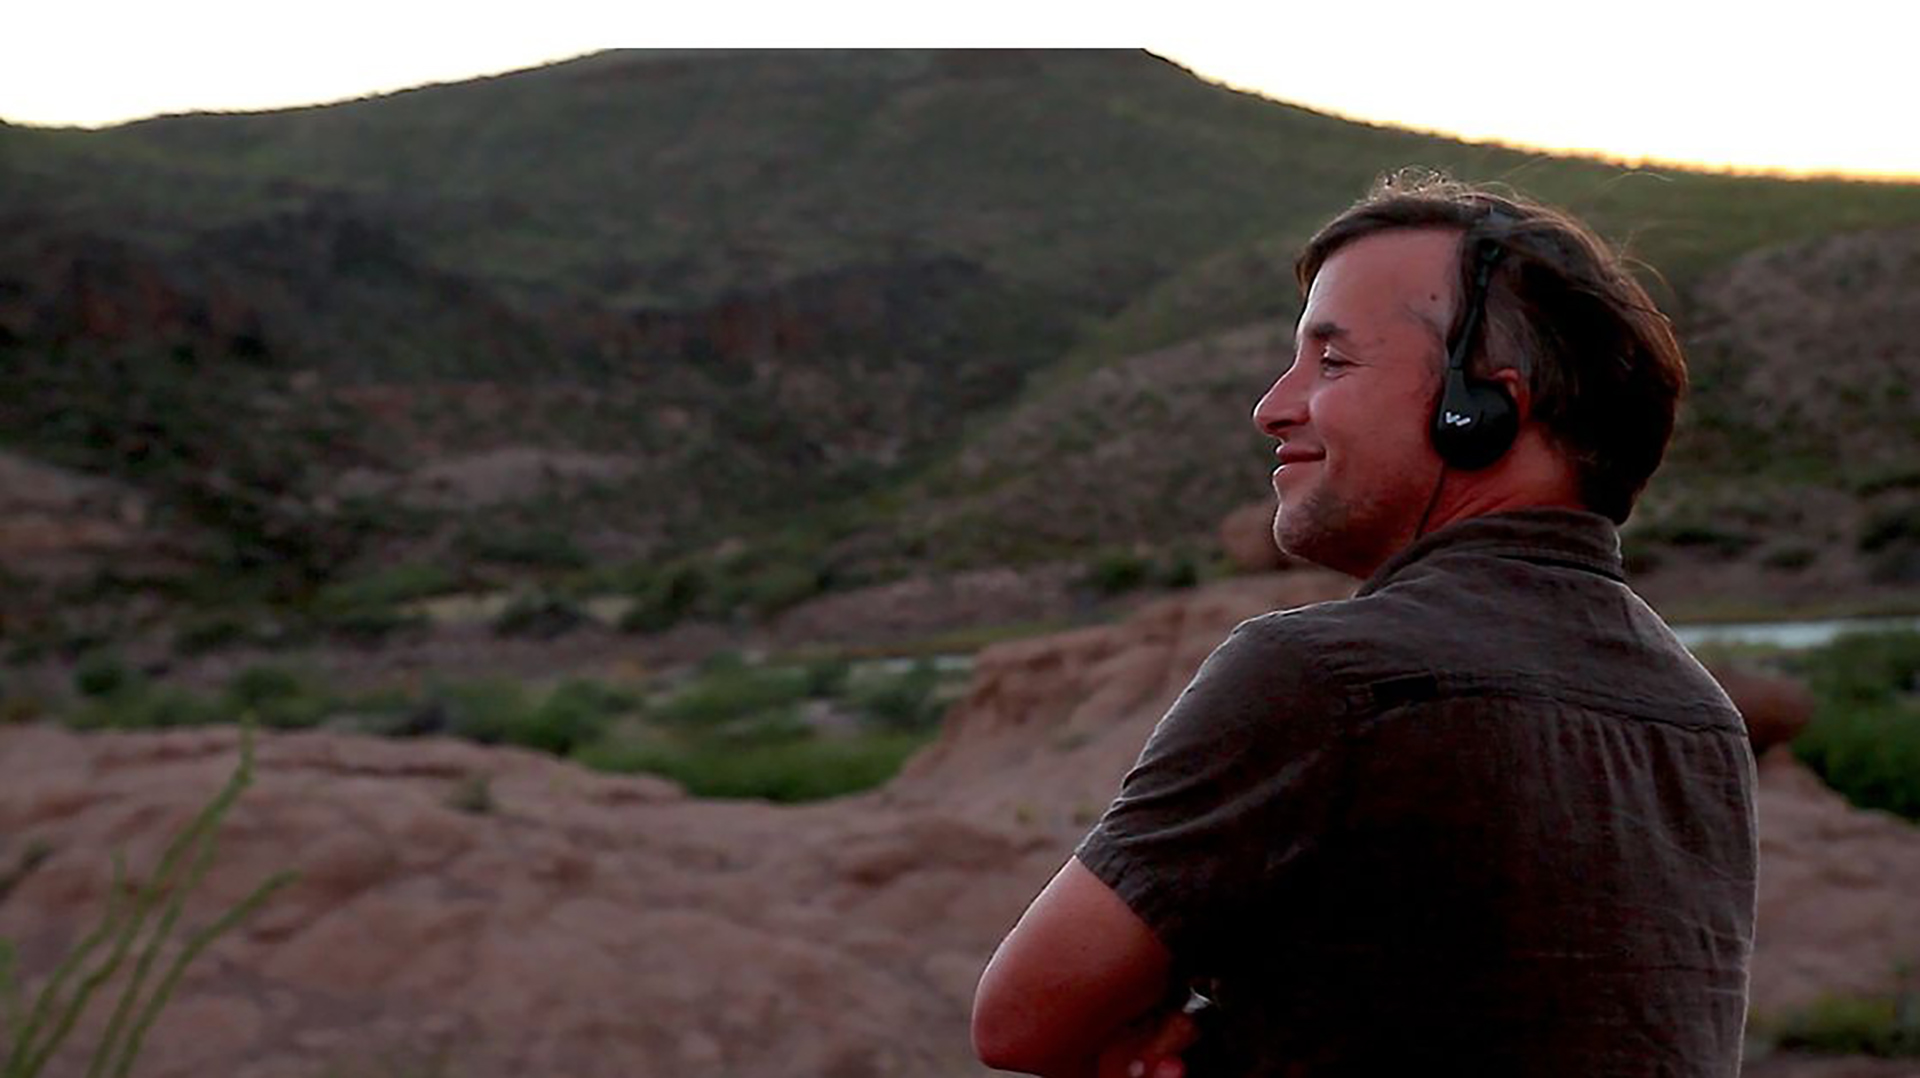 'Dazed and Confused,' 'Boyhood' filmmaker Richard Linklater to be profiled on 'American Masters'